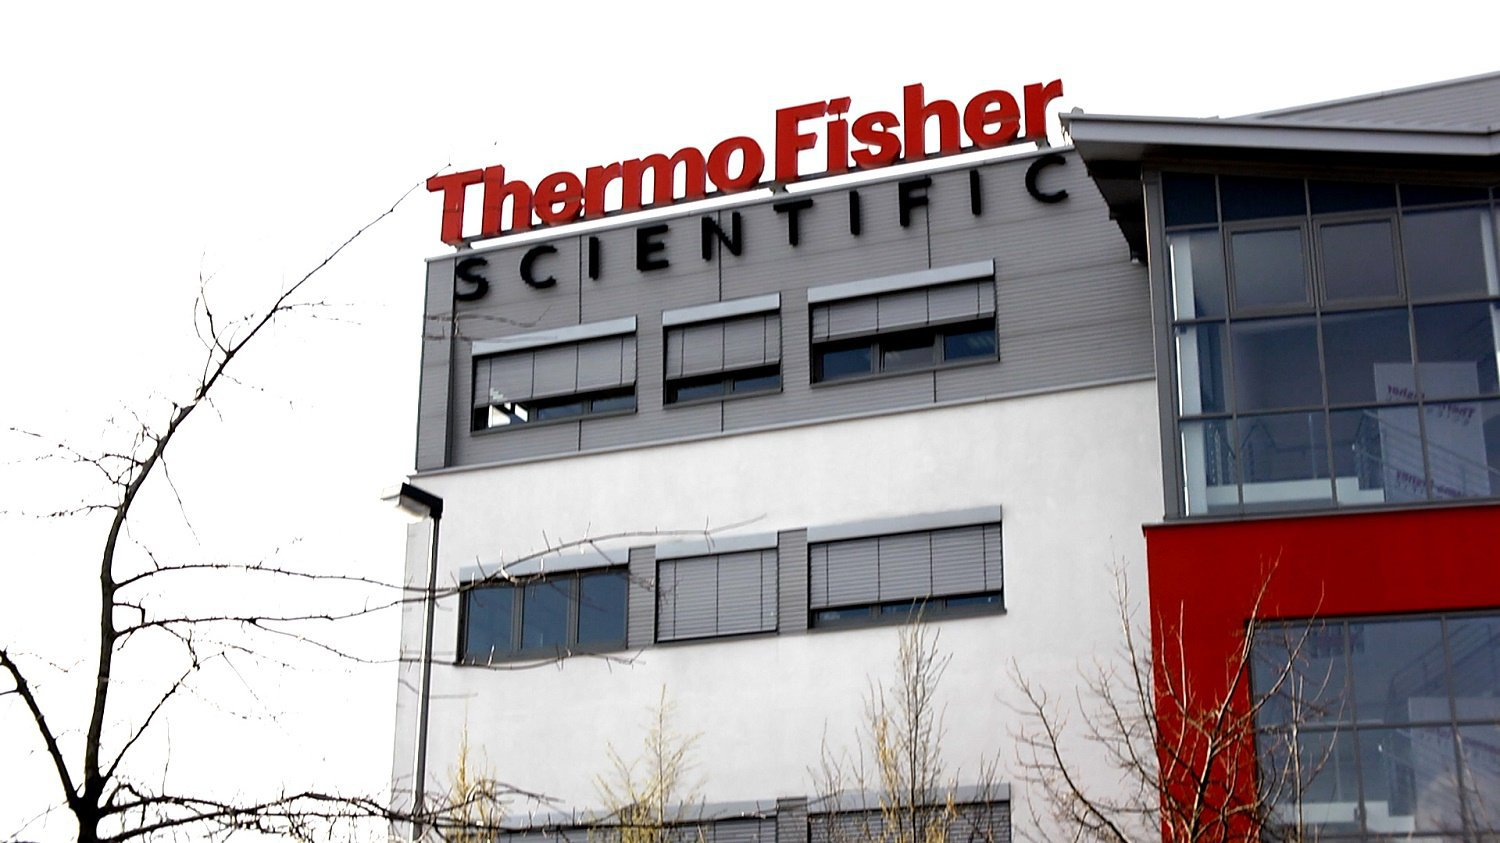 Thermo Fisher Reveals Plans To Buy Patheon Community Financial News